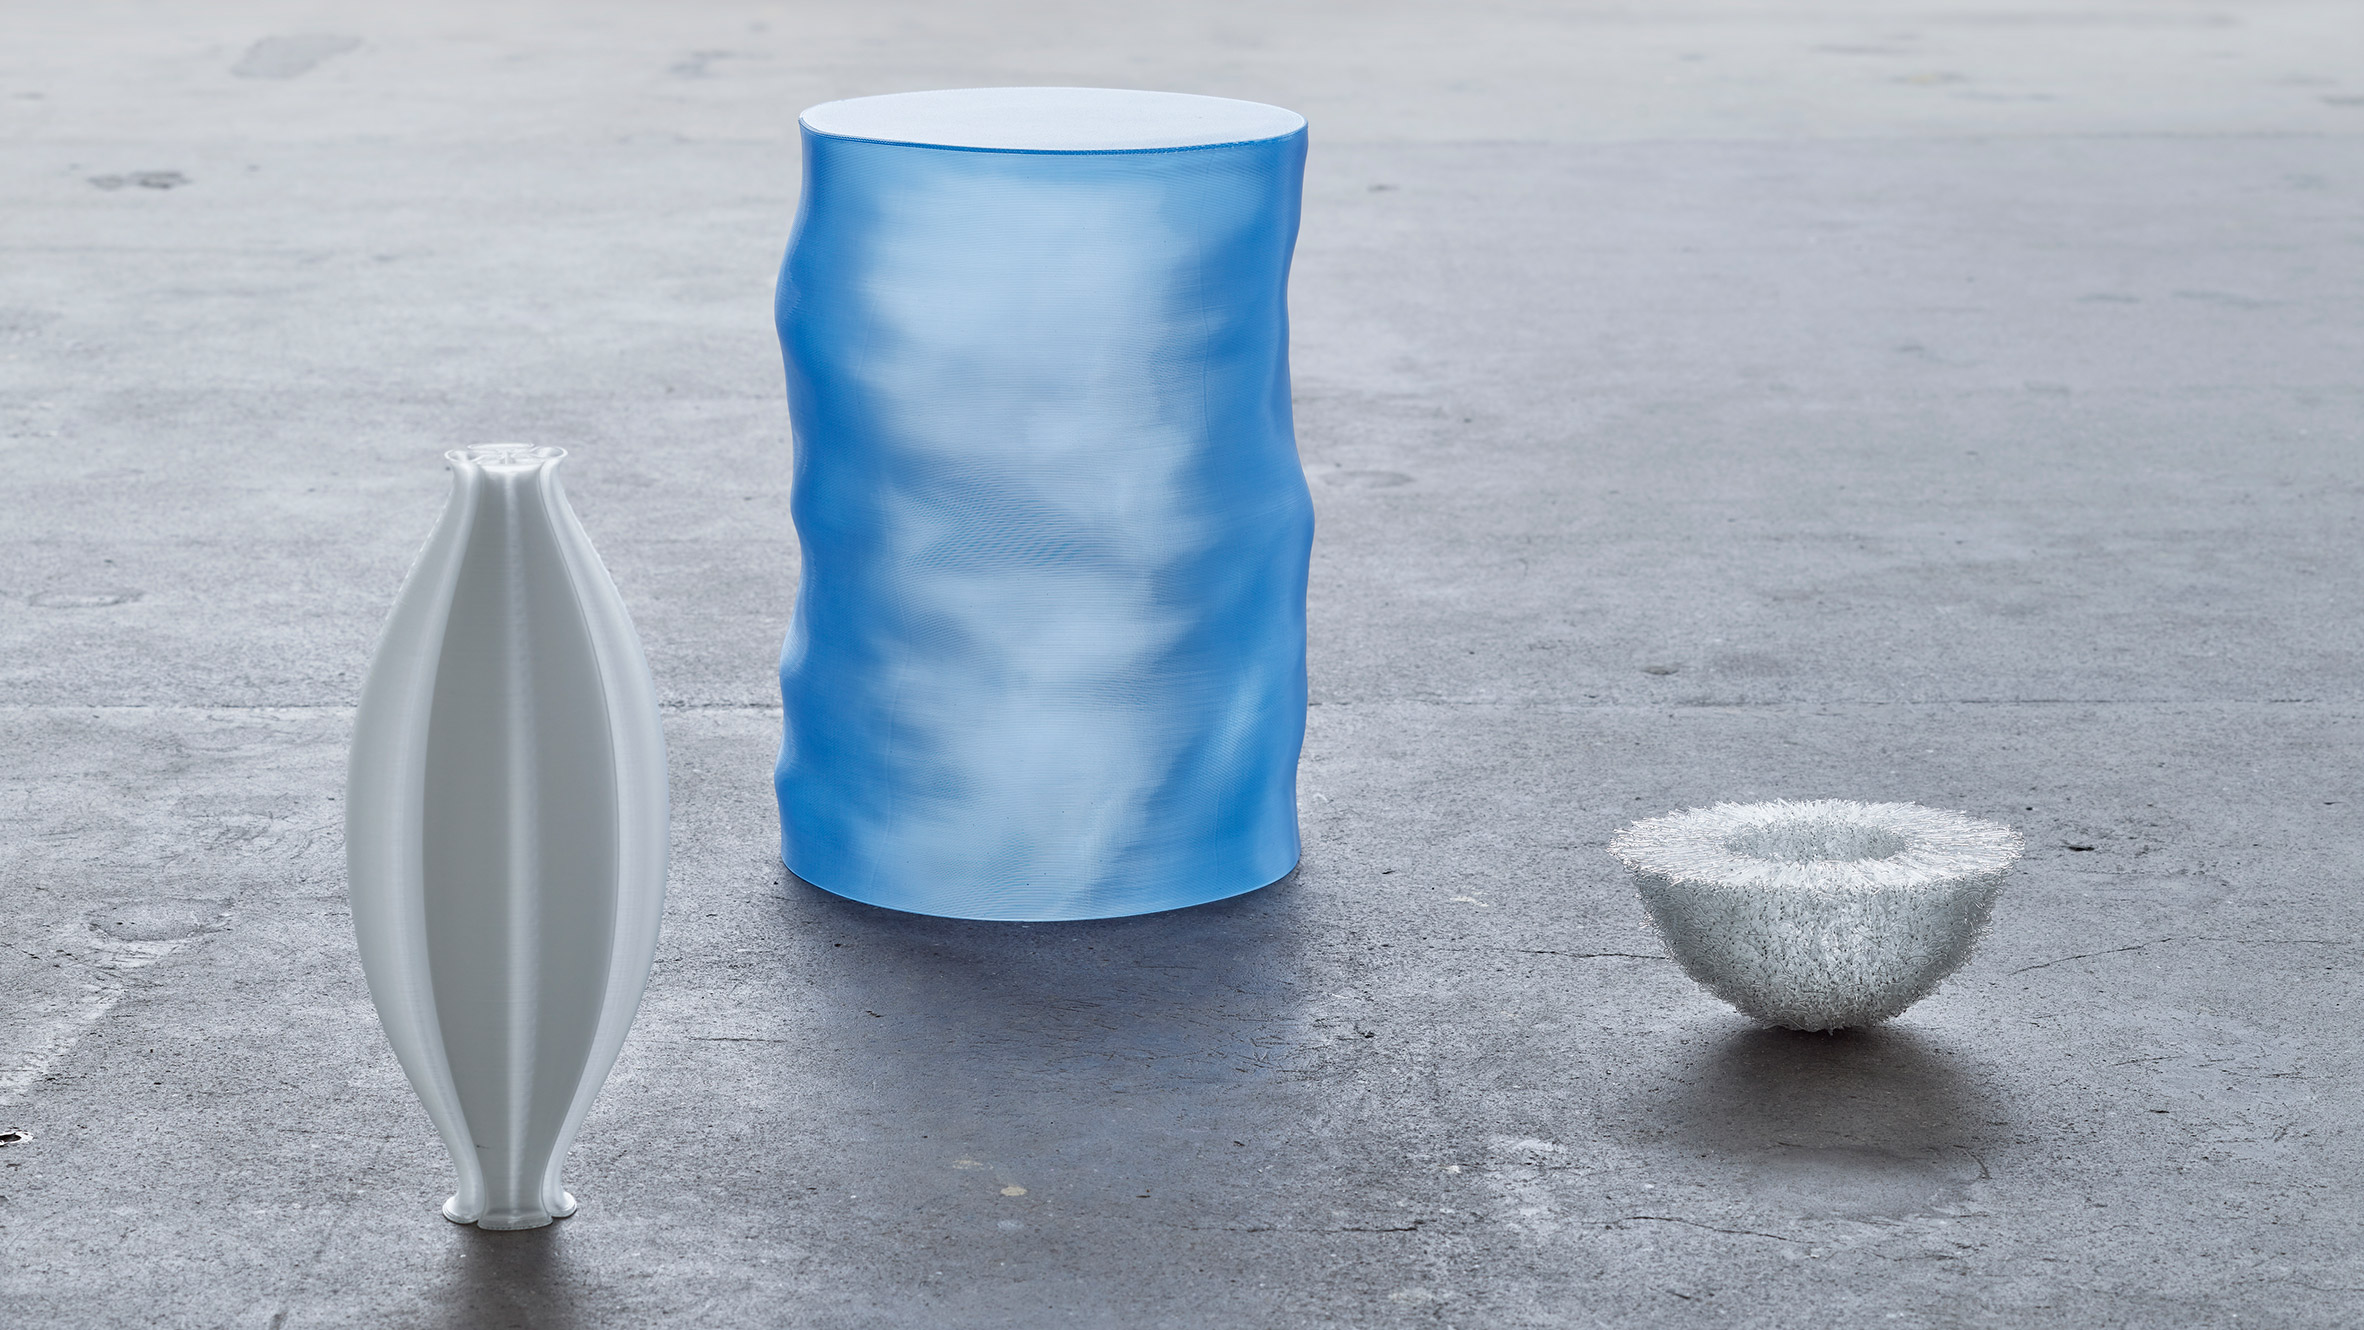 Ctenophora Vase, Morning Dip Side Table and Echinoidea Bowl by ninetyoneninetytwo for The Mindcraft Project 2021